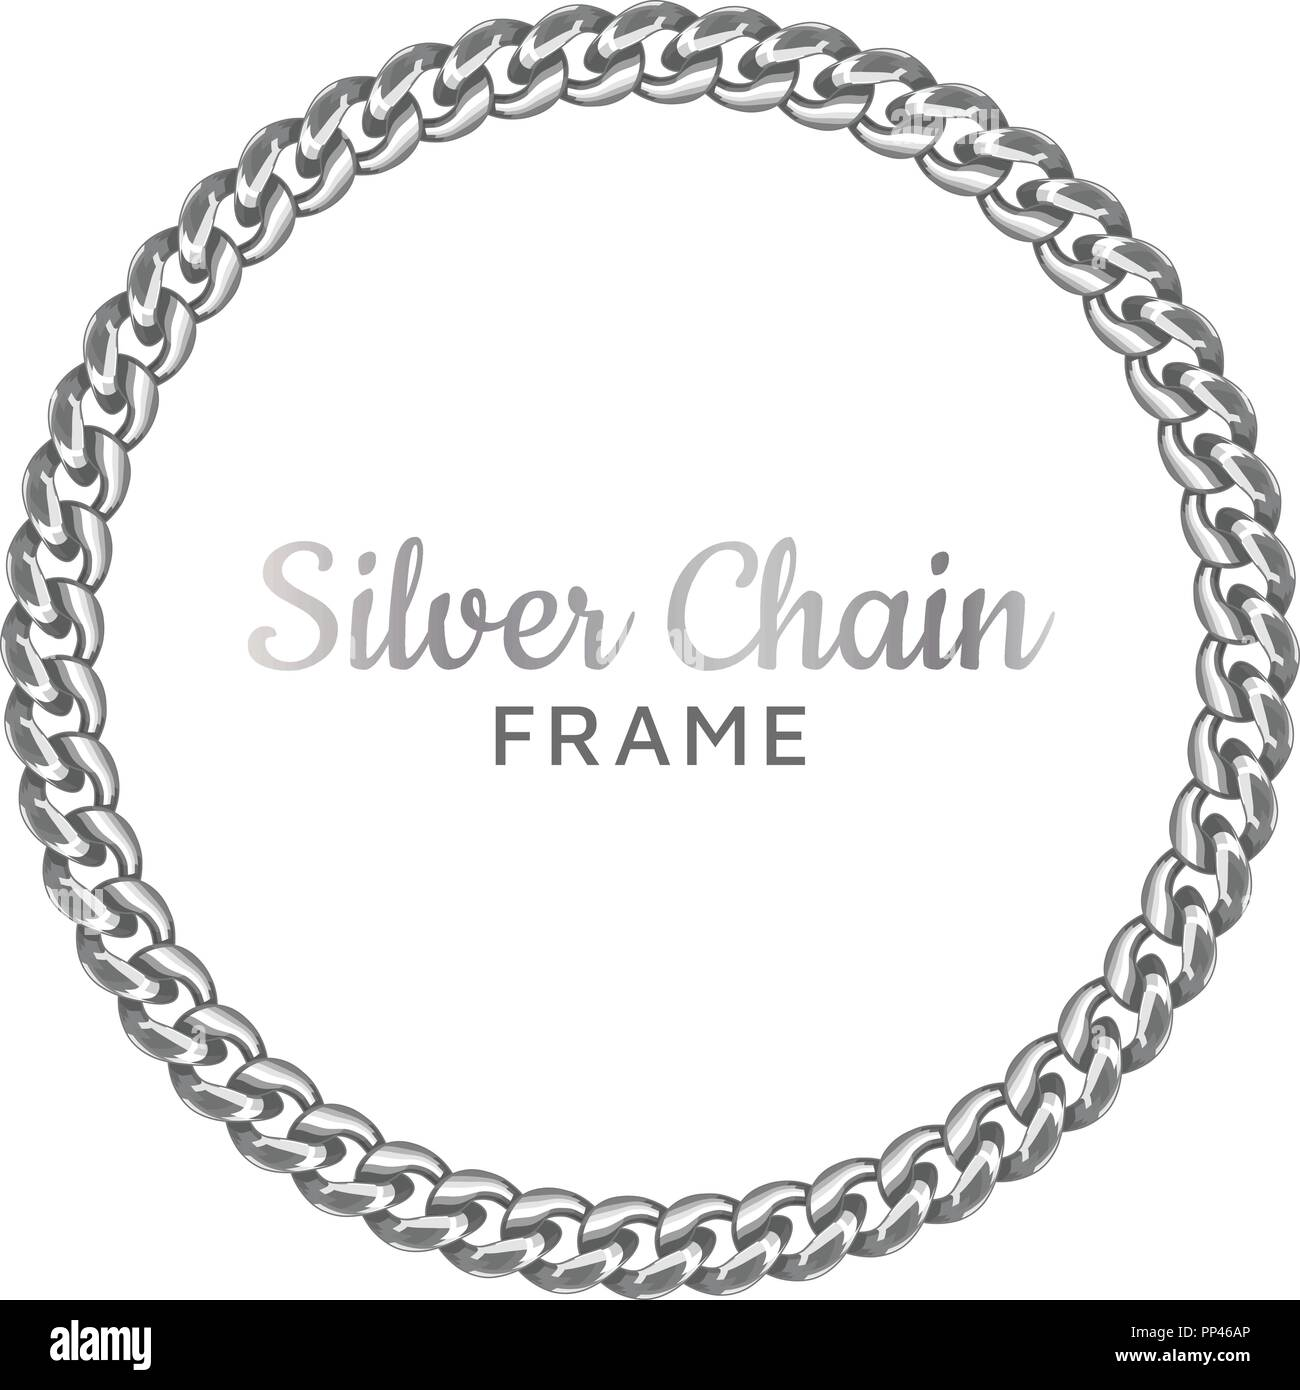 Silver Chain Round Border Frame.   Stock Image